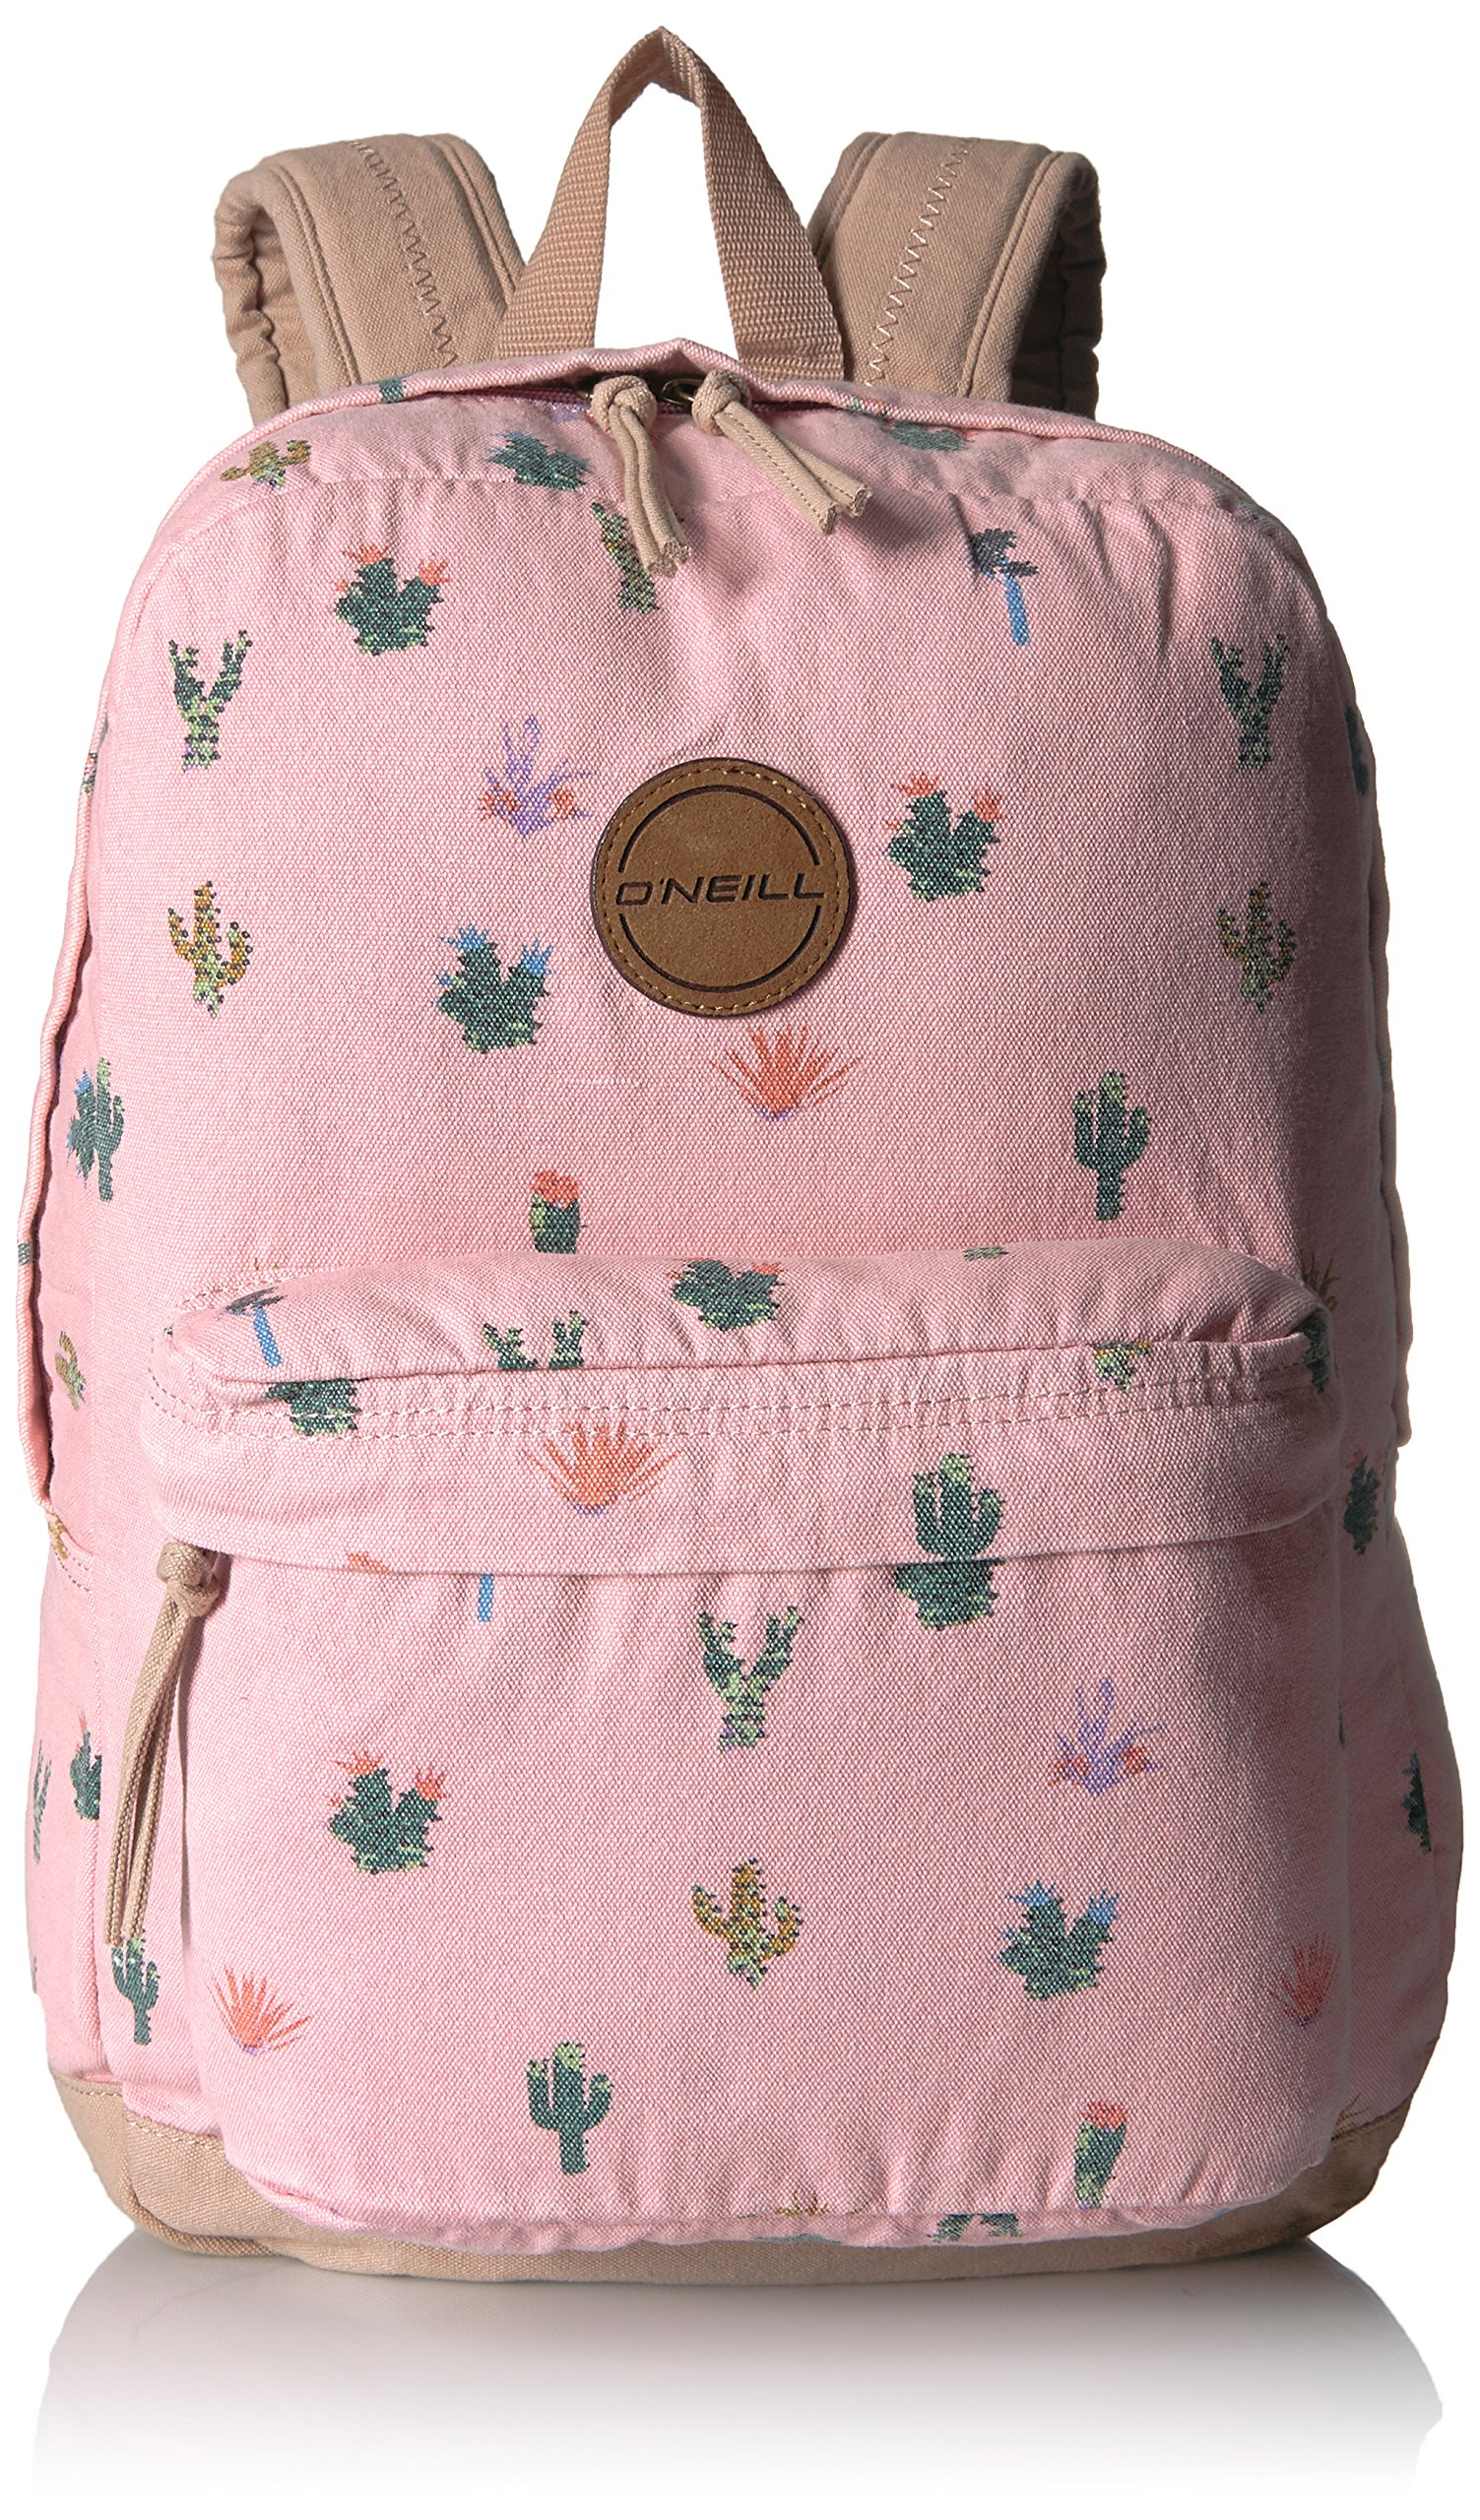 O'Neill Big Girls' Bolsa Chica and Coastal Cruiser Backpacks, Cotton Candy, ONE